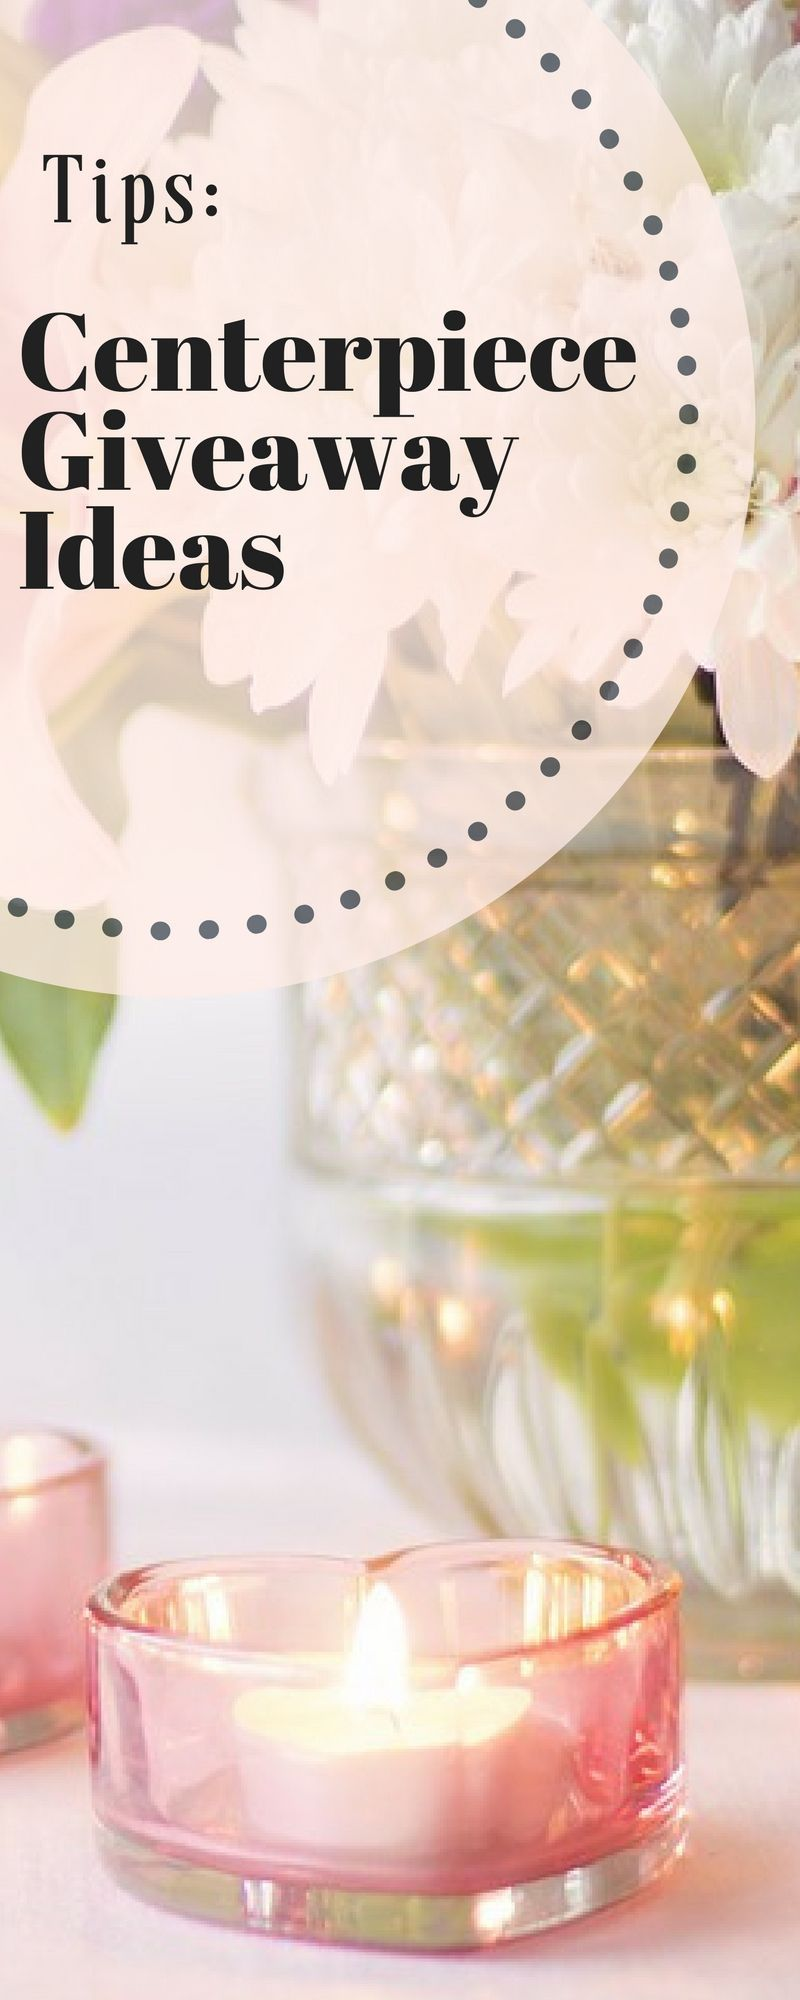 Tips centerpiece giveaway ideas wedding decorations and ideas centerpieces are one of the key elements in your wedding decor i thought about what junglespirit Gallery